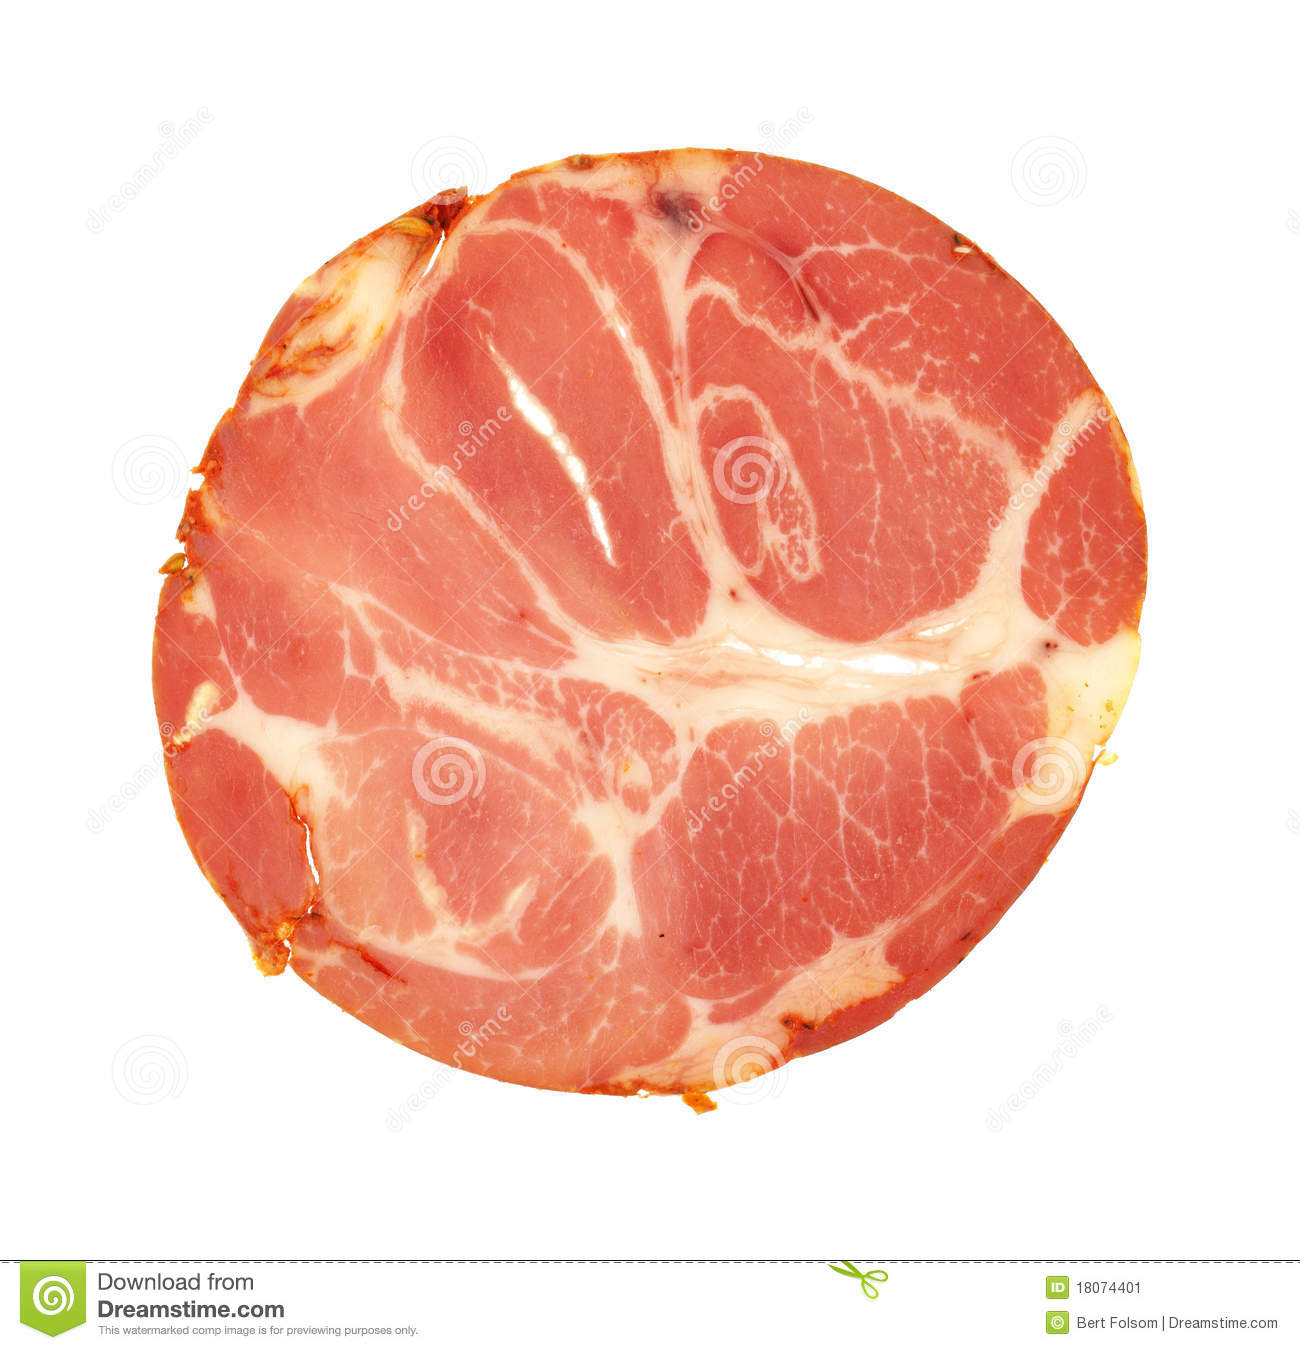 single slice of hot capicola lucheon meat on a white background.